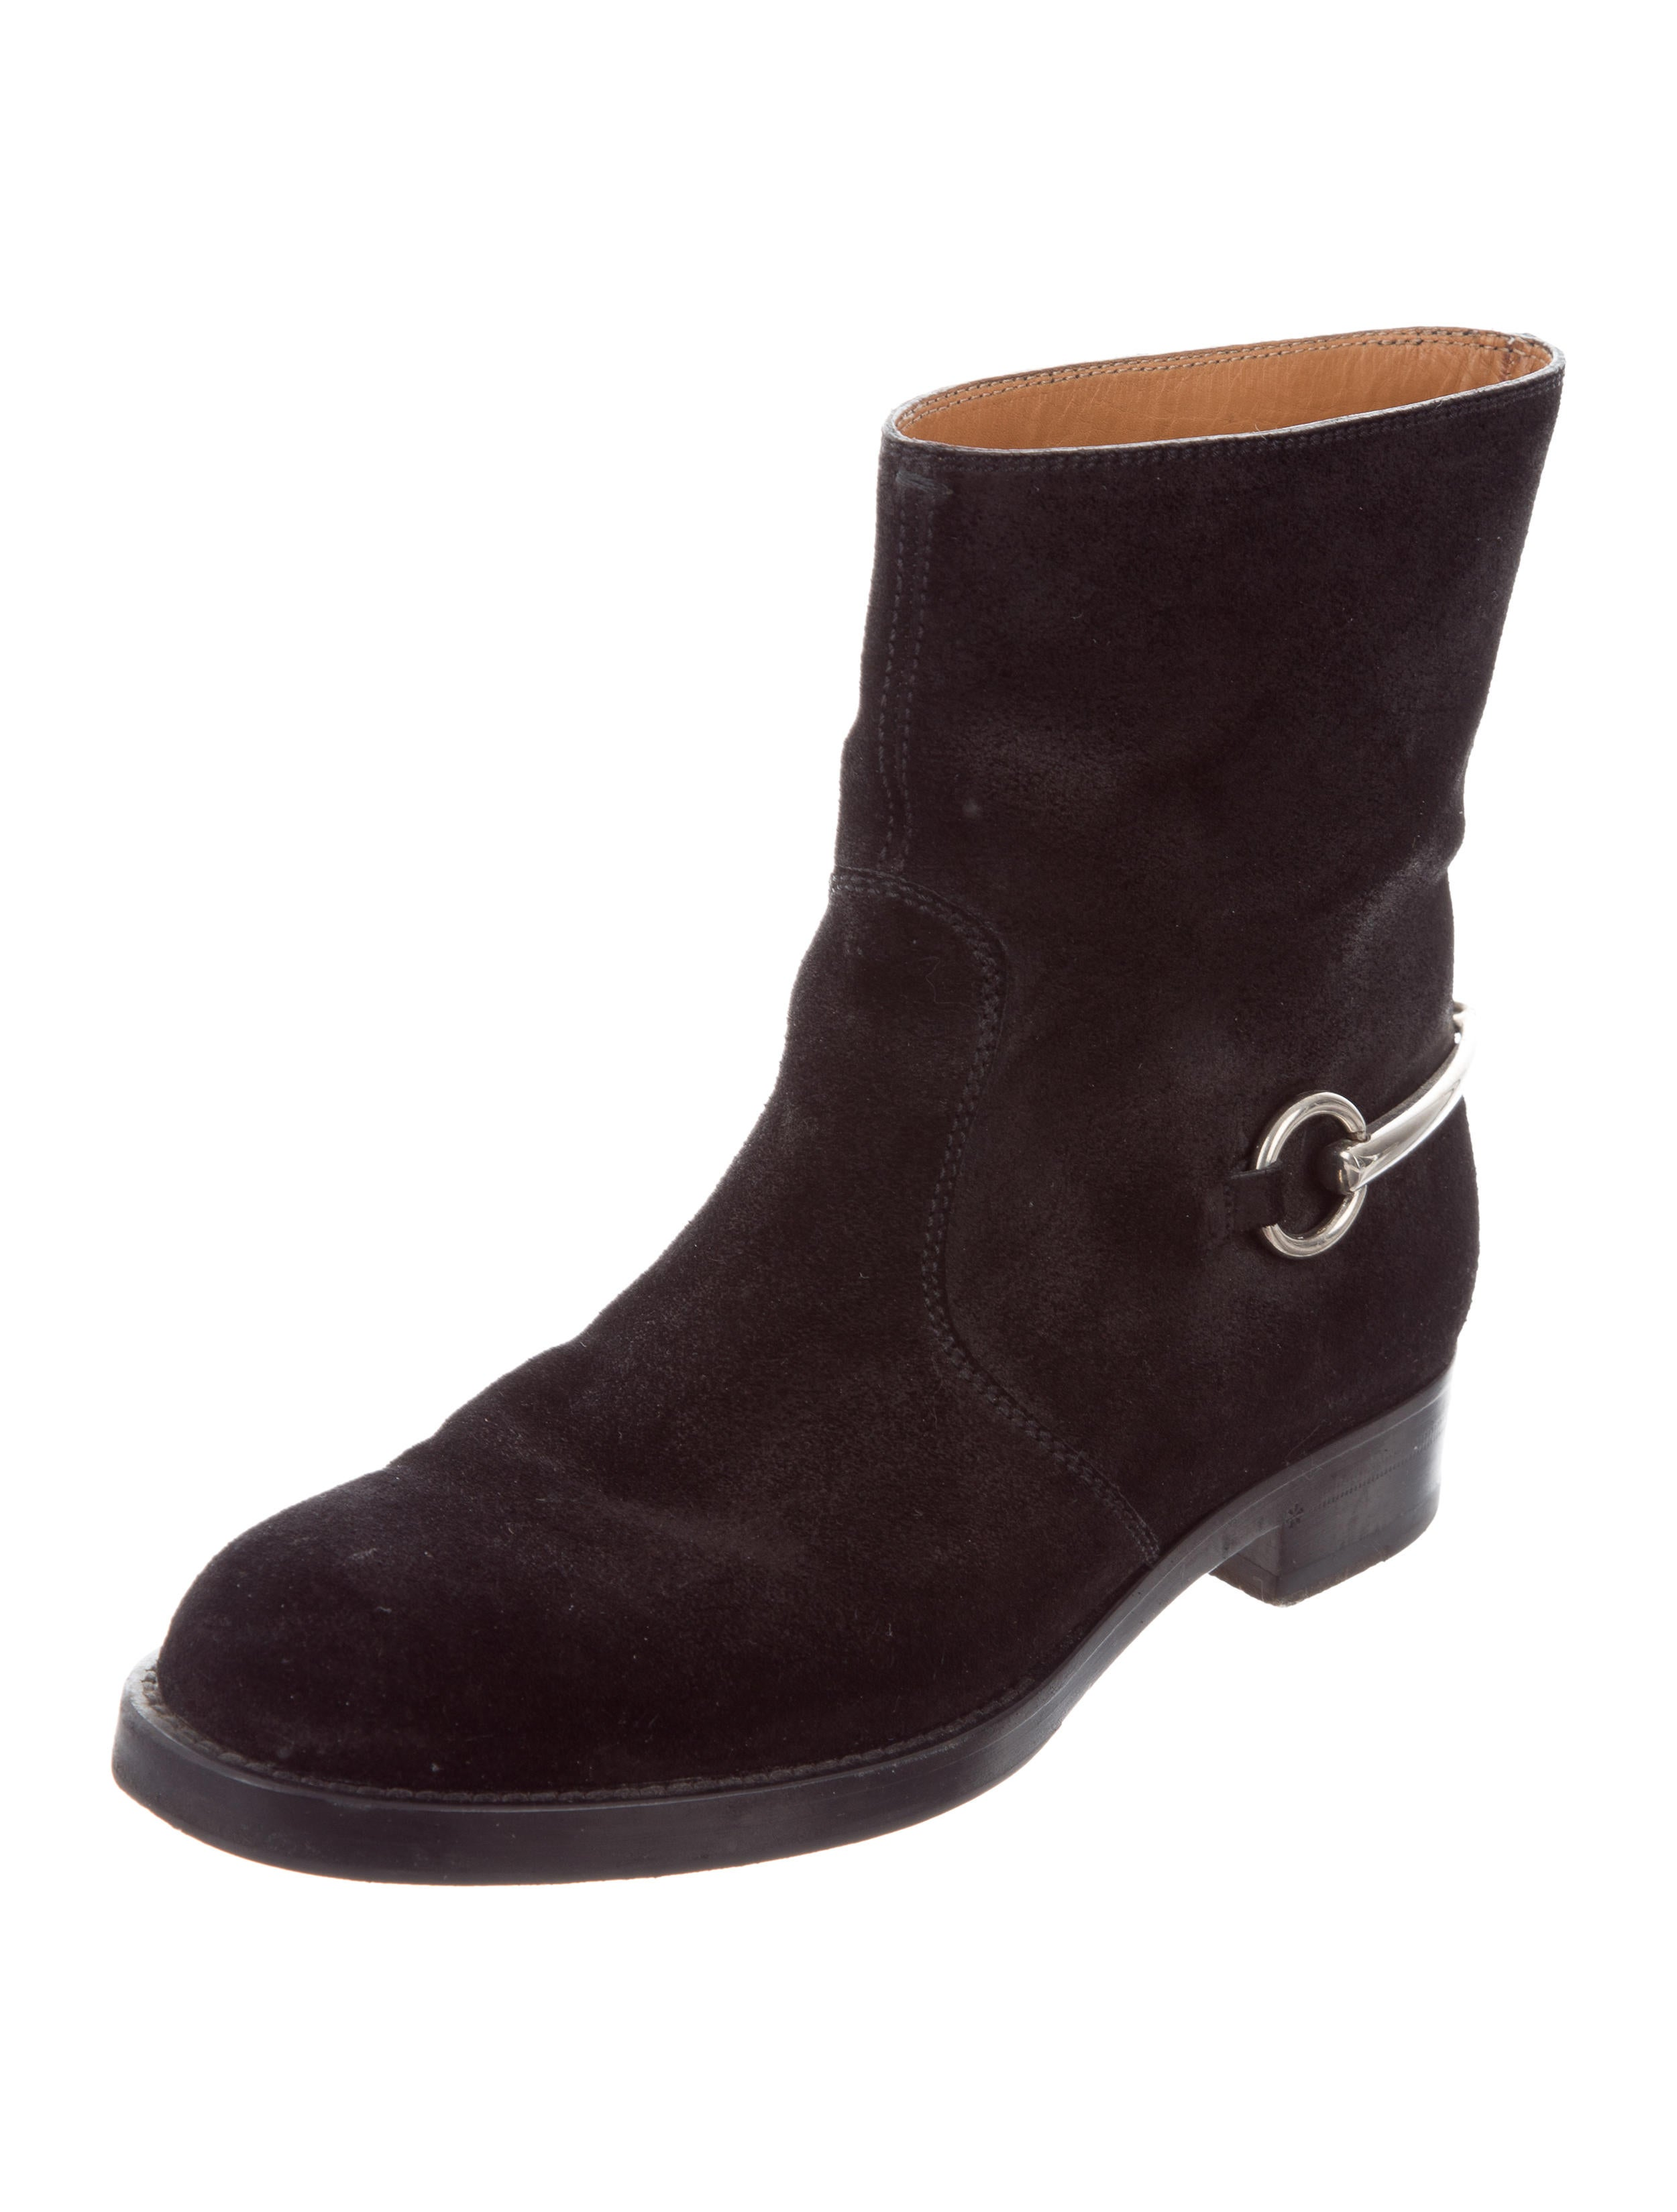 gucci horsebit suede ankle boots shoes guc156550 the